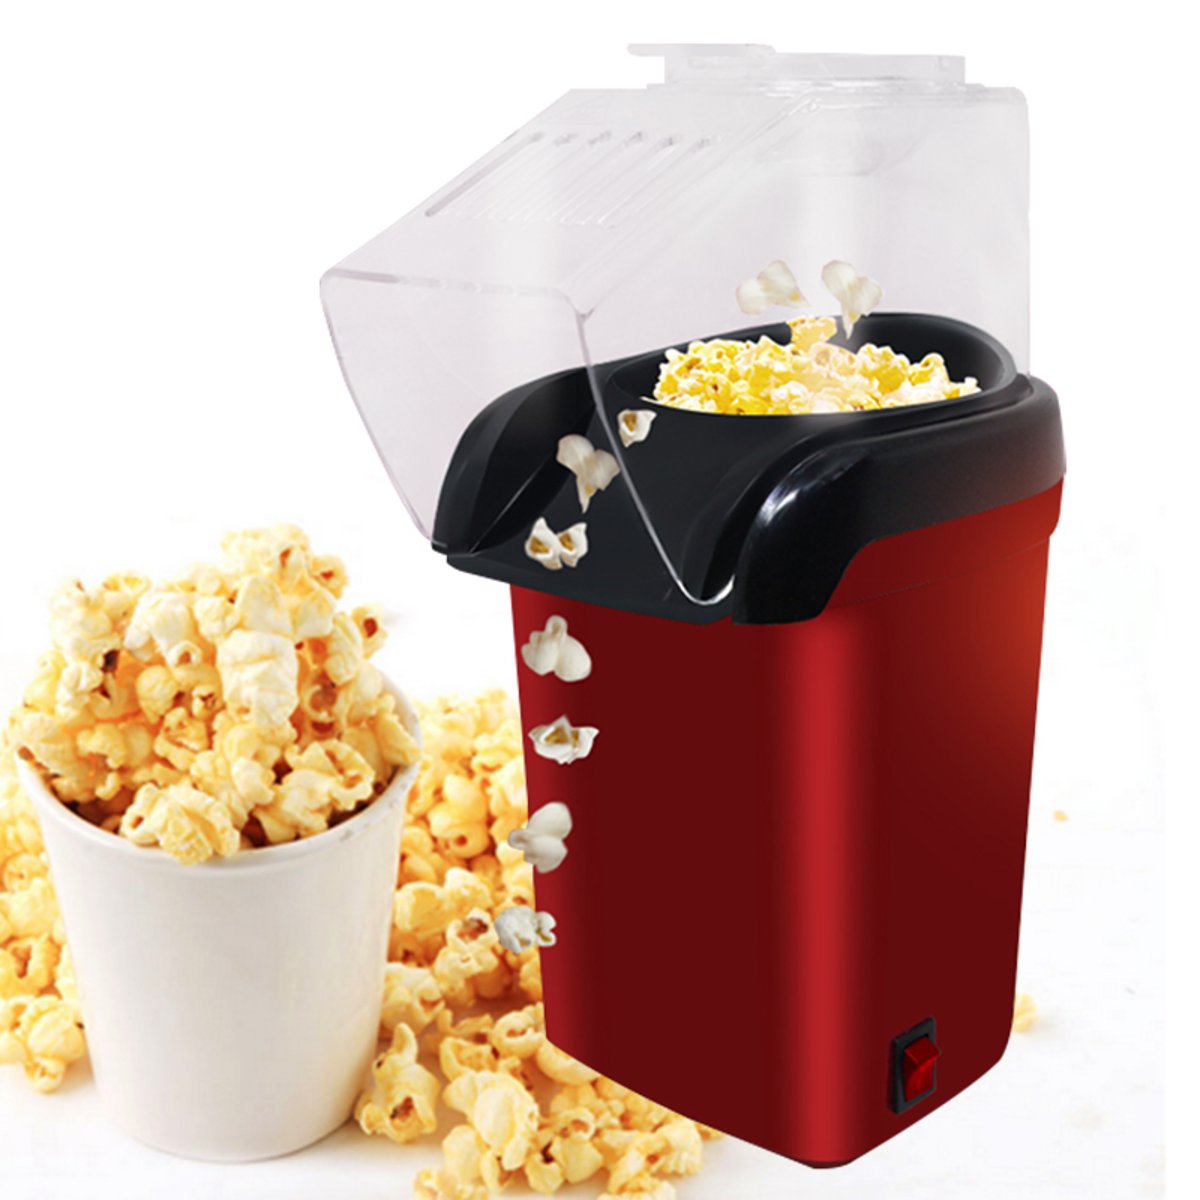 Mini Household Healthy Hot Air Oil-free Popcorn Maker Home Kitchen Machine Tools